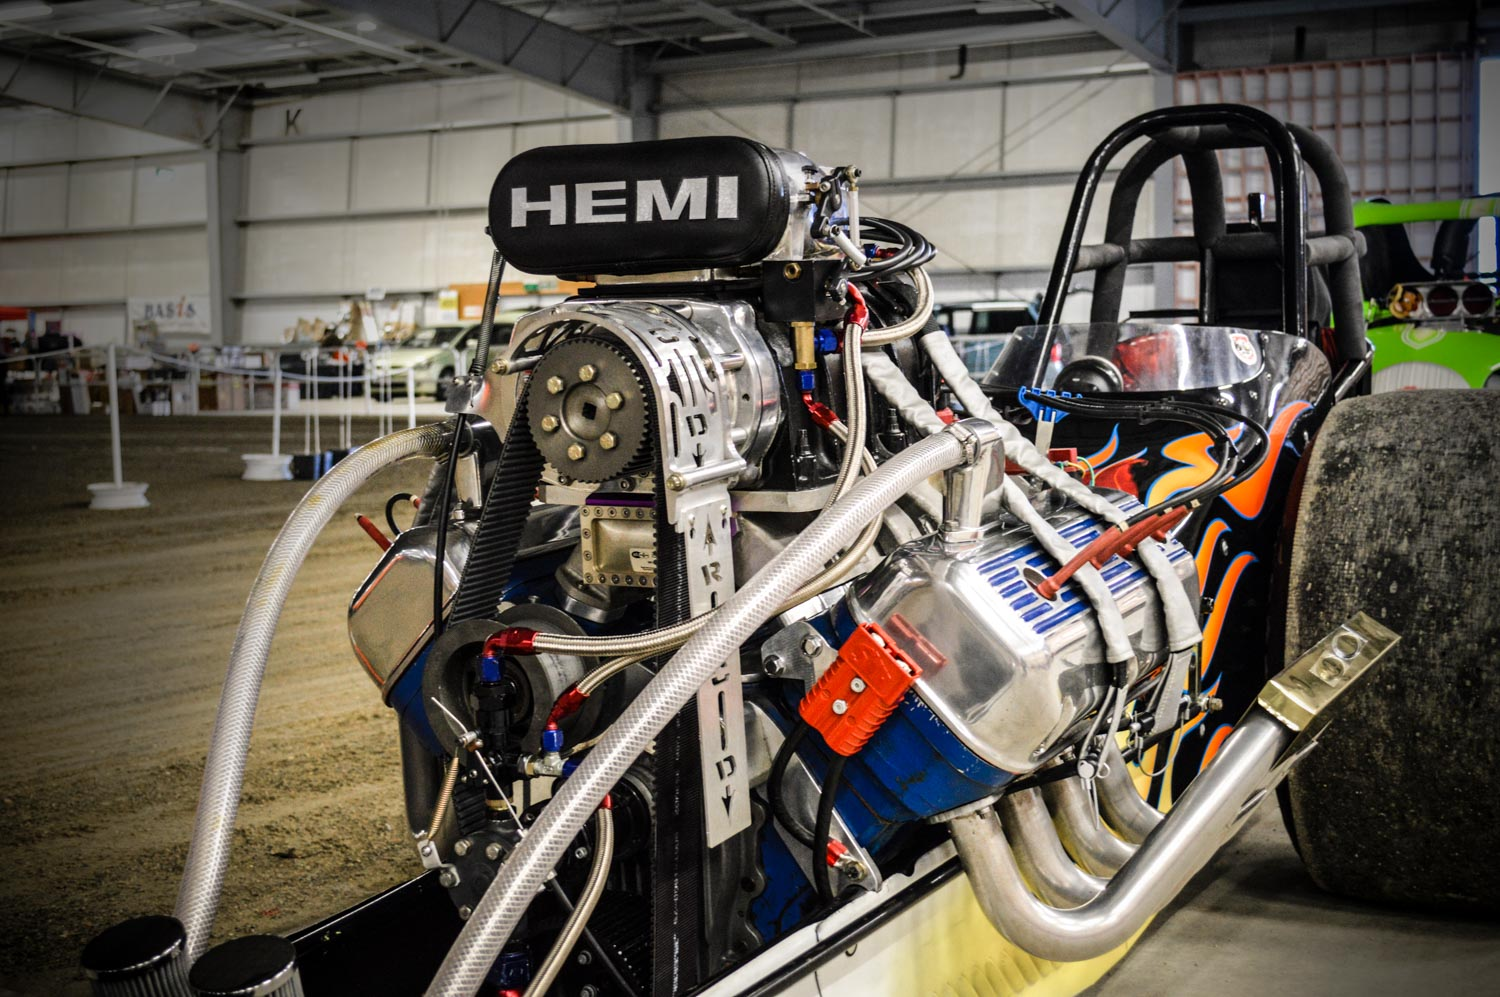 Weekly Motor Fix: 'Hell Razor' blown Hemi front-engined dragster